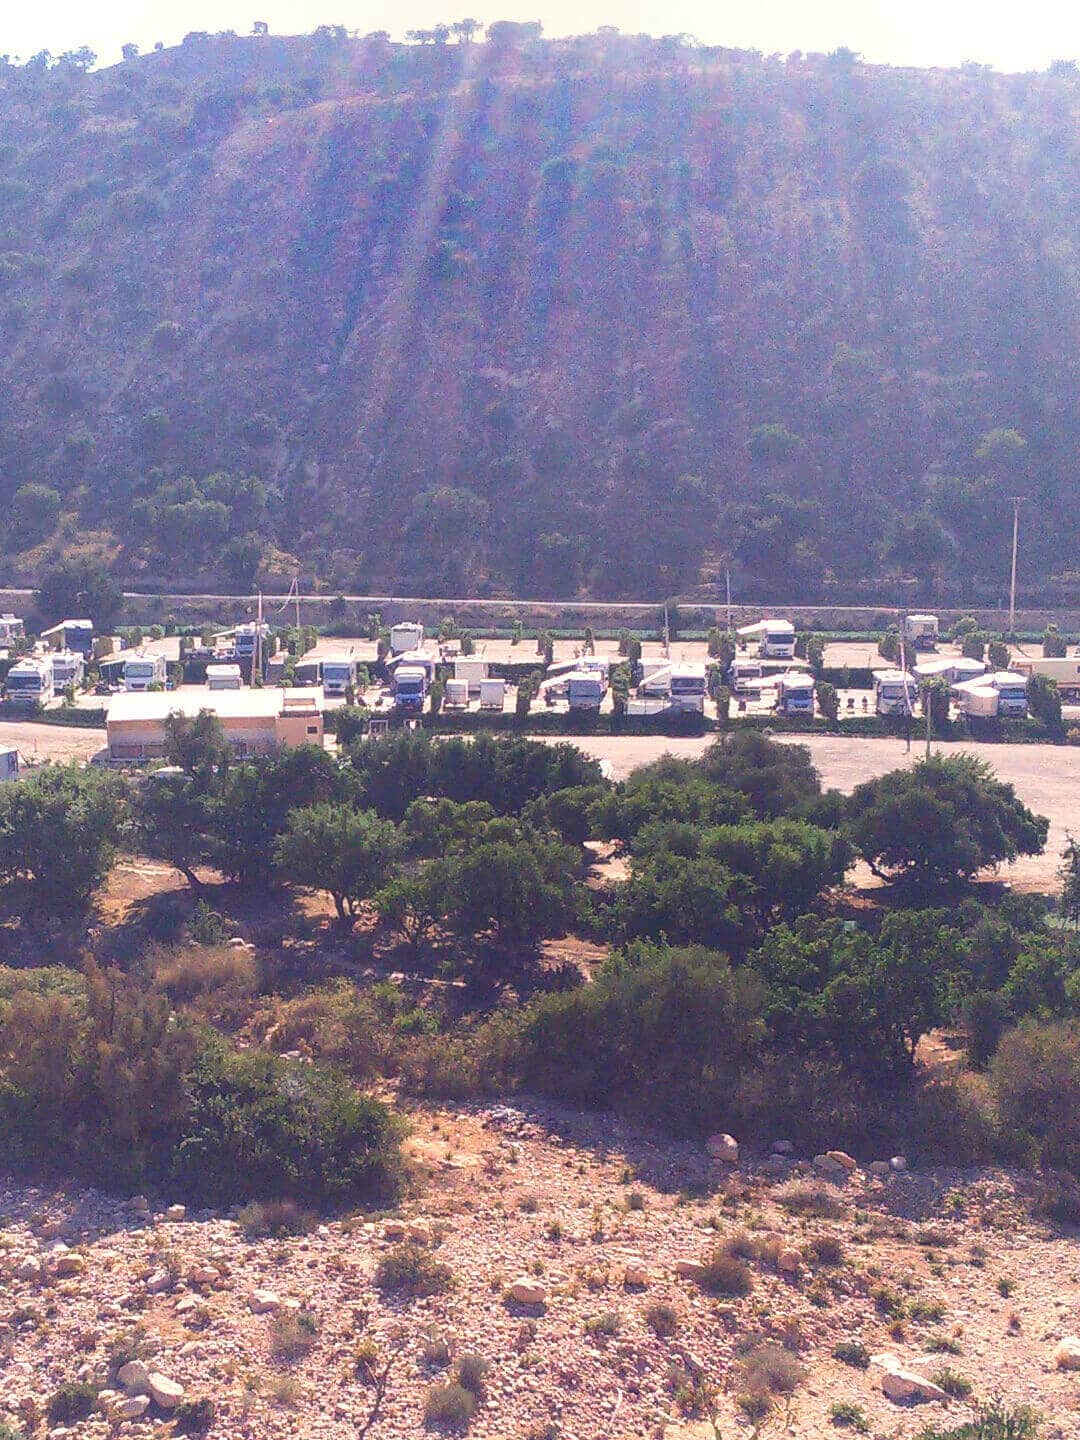 Camping Aourir – View from the opposite Mountain Slope to the Campsite in Aourir